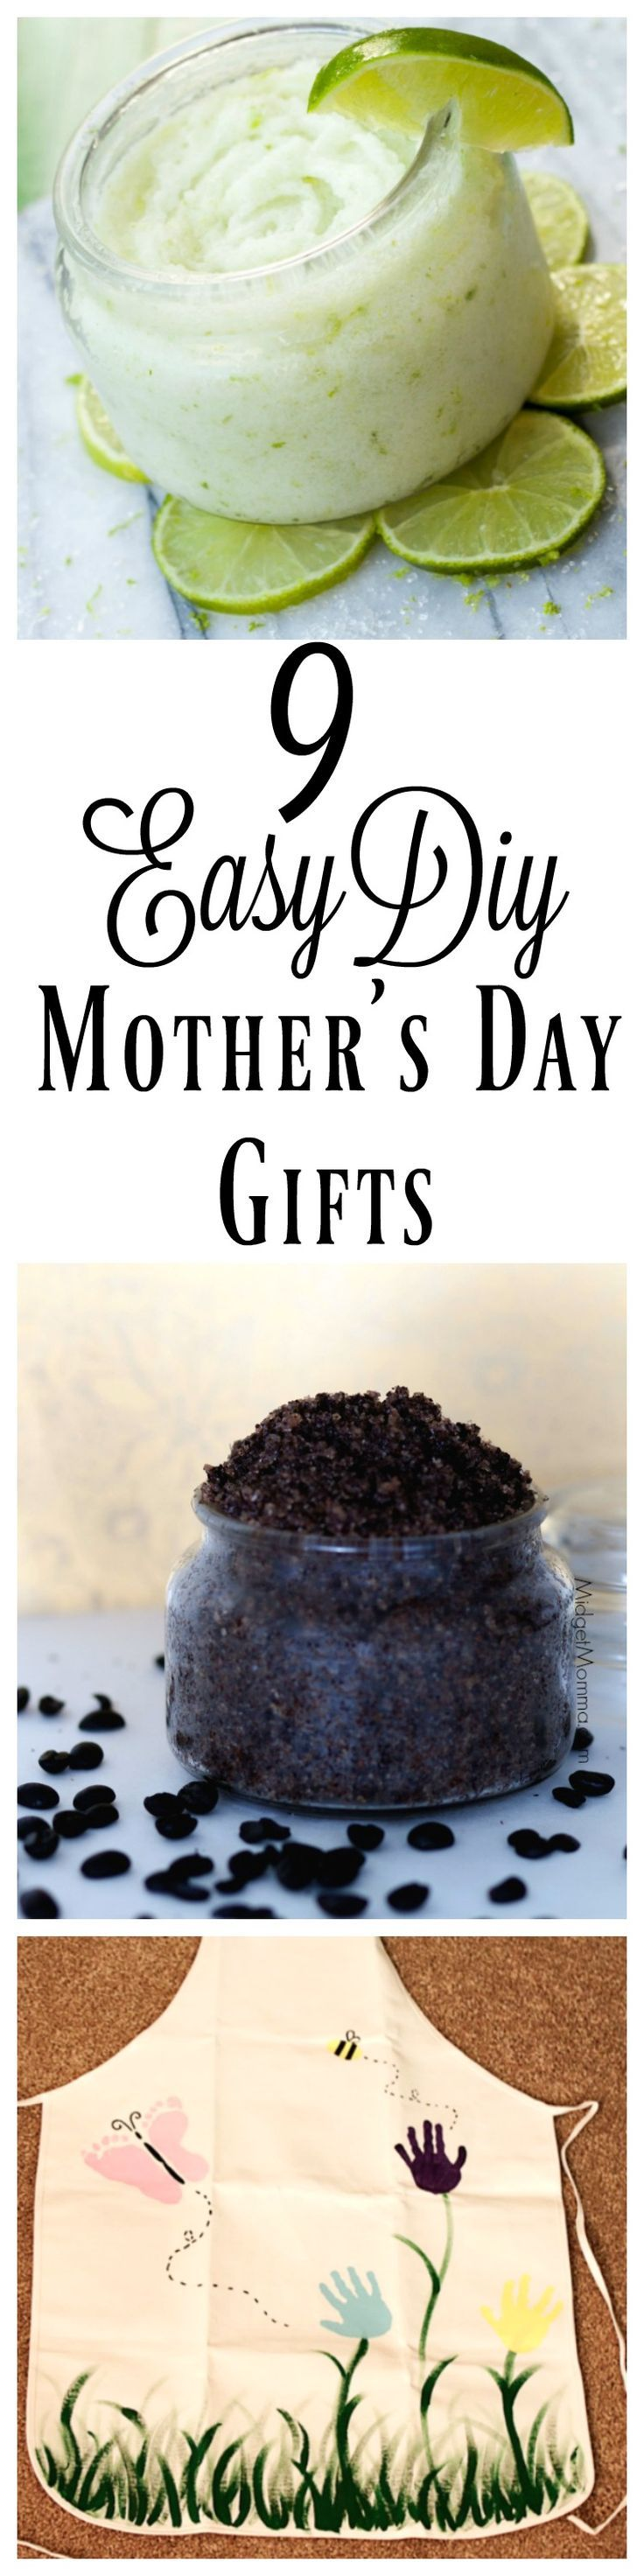 These 9 easy DIY Mother's Day gifts are ones Mom will love! Personalized Mother's Day gifts that the kids can make for Mom with just a little bit of help!